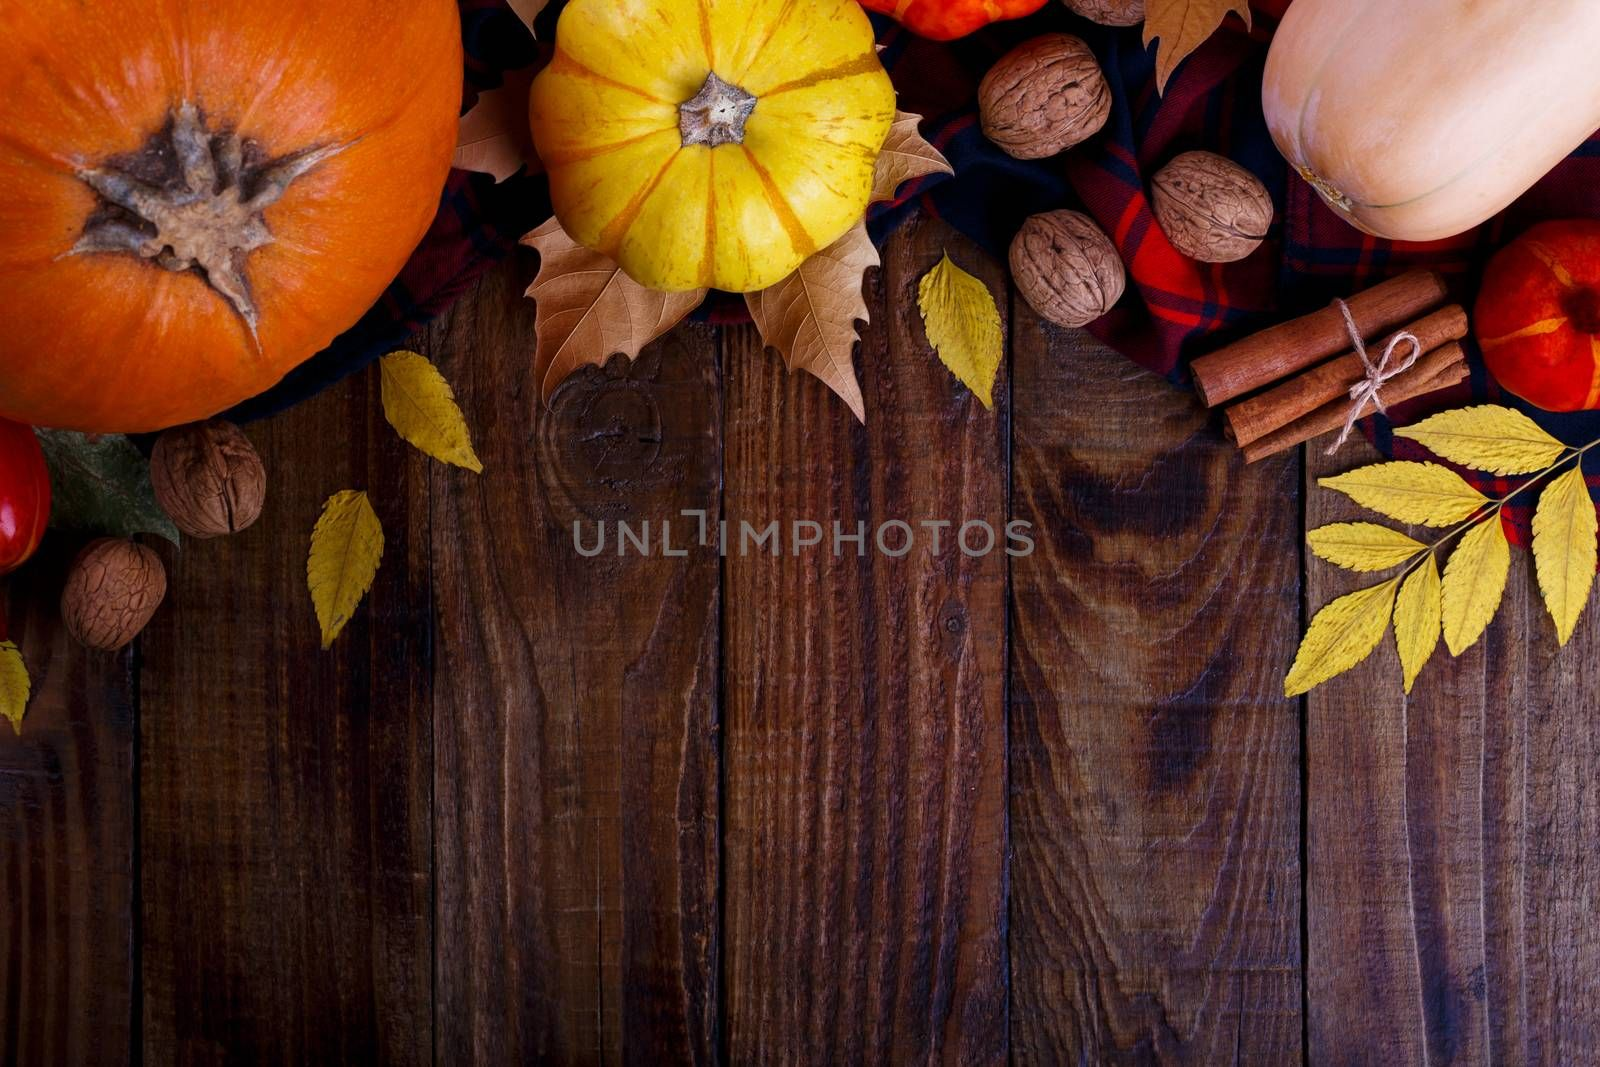 Autumn halloween or thanksgiving backgrouund Yellow and red leaves and colorful pumpkins copy space